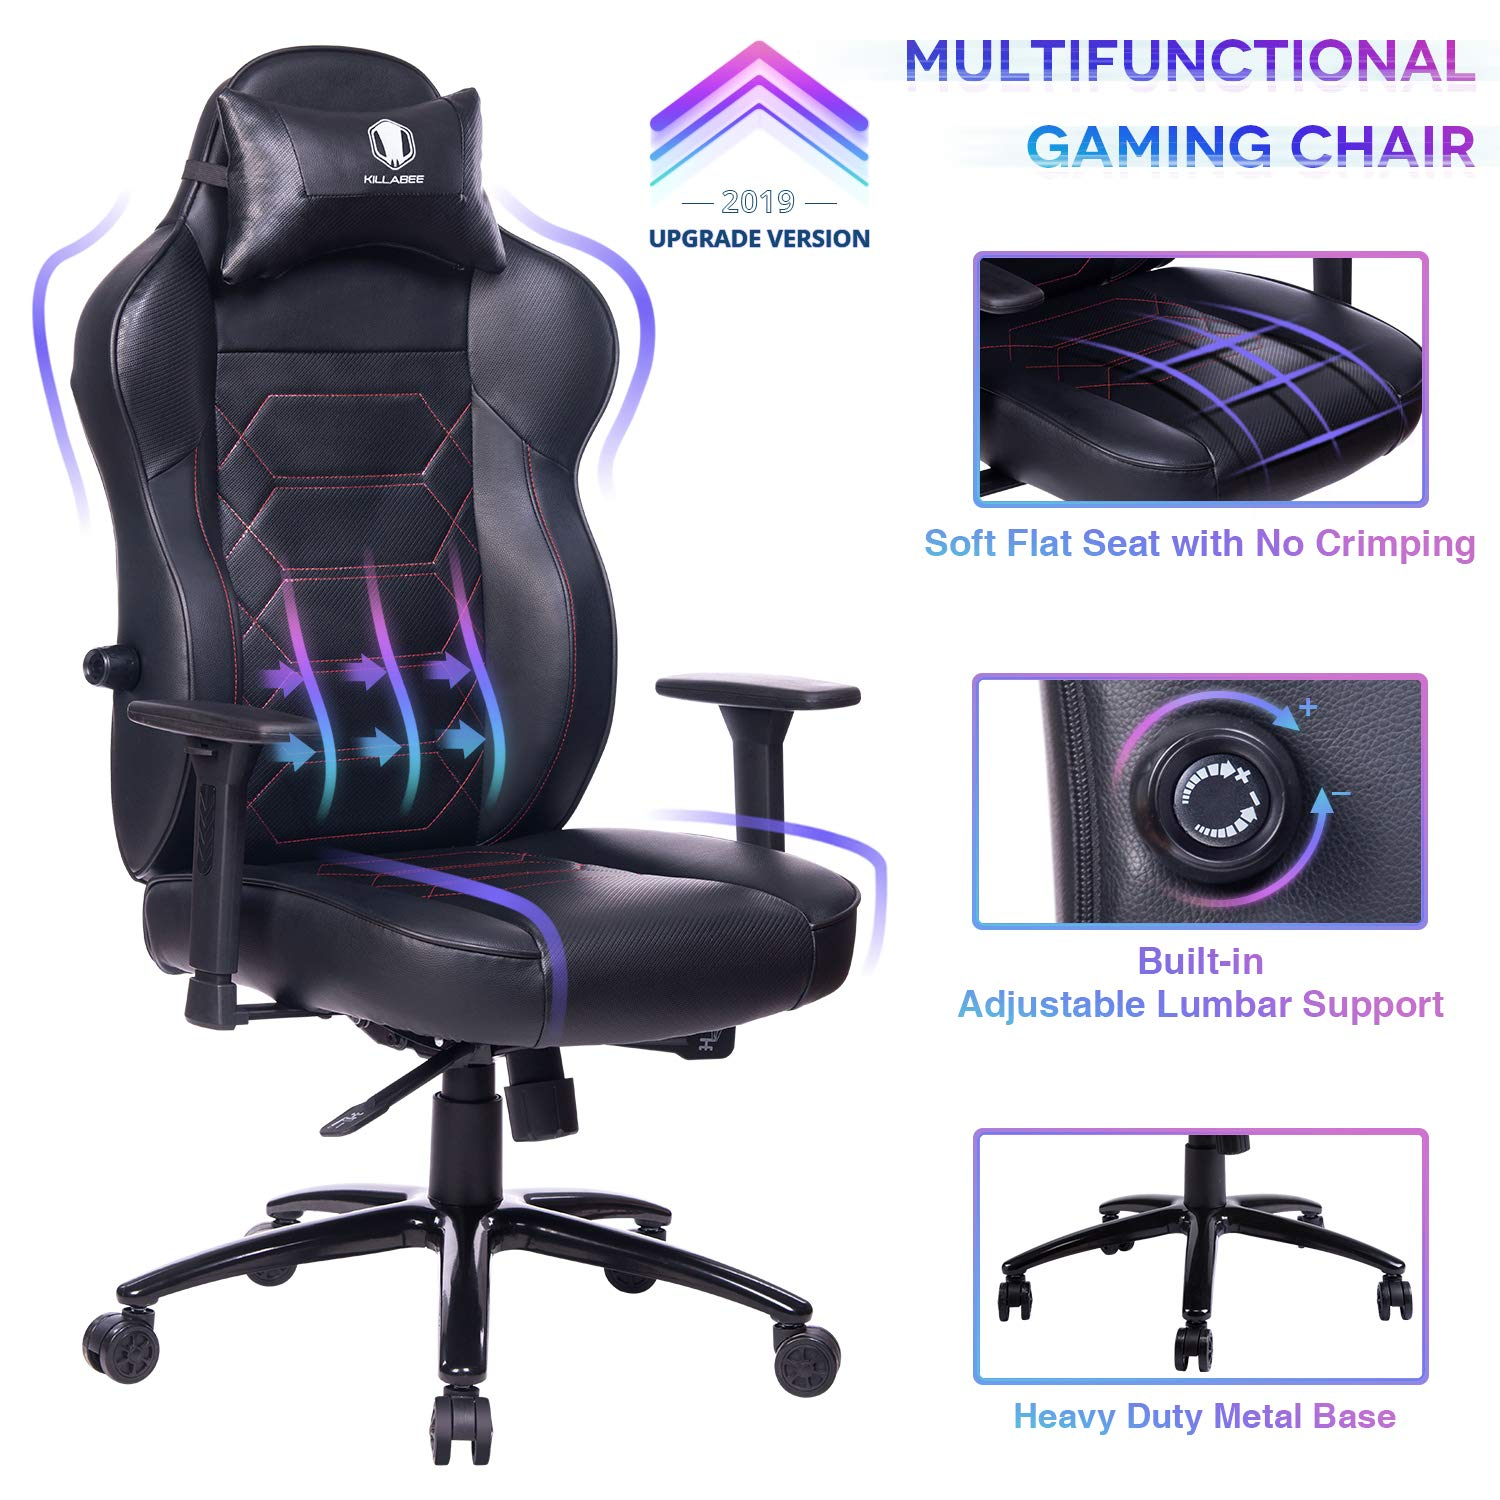 KILLABEE Gaming Chair Racing Office Chair - Adjustable Built-in Lumbar Support and Back Angle Ergonomic High-Back Leather Computer Desk Executive Swivel Chair with Wide Flat Seat and Metal Base by KILLABEE